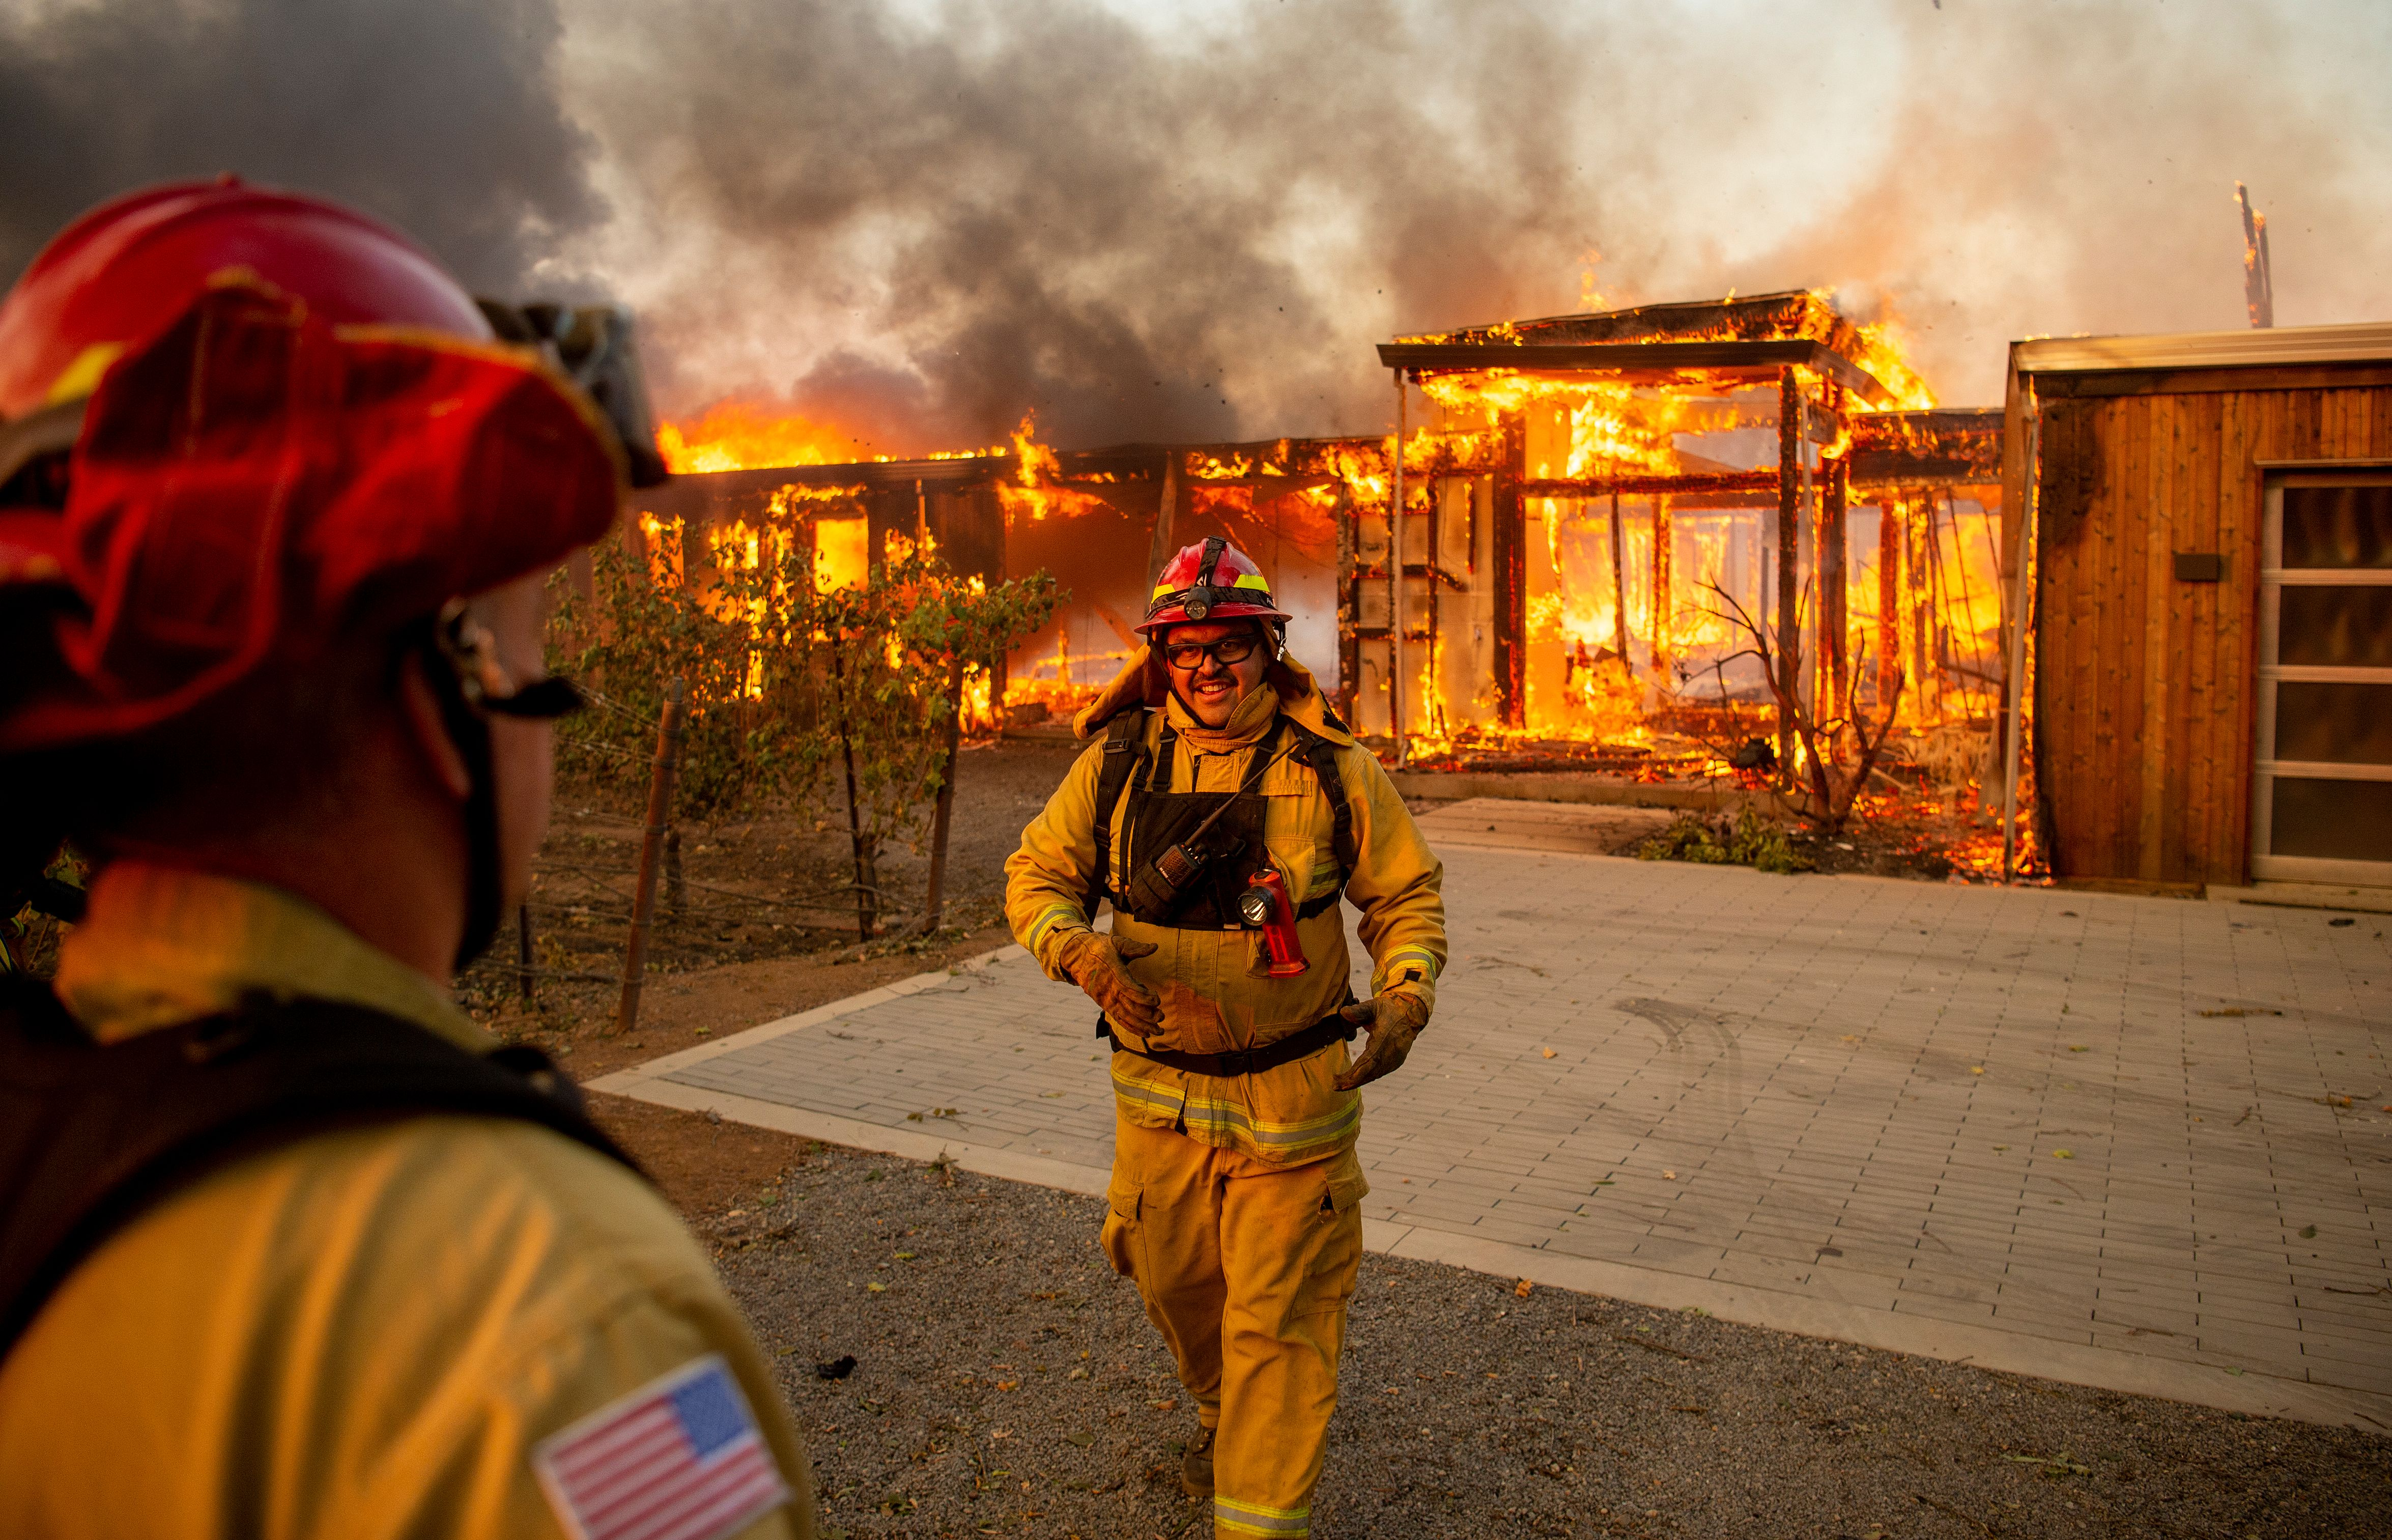 A house on fire with two firefighters battling it.